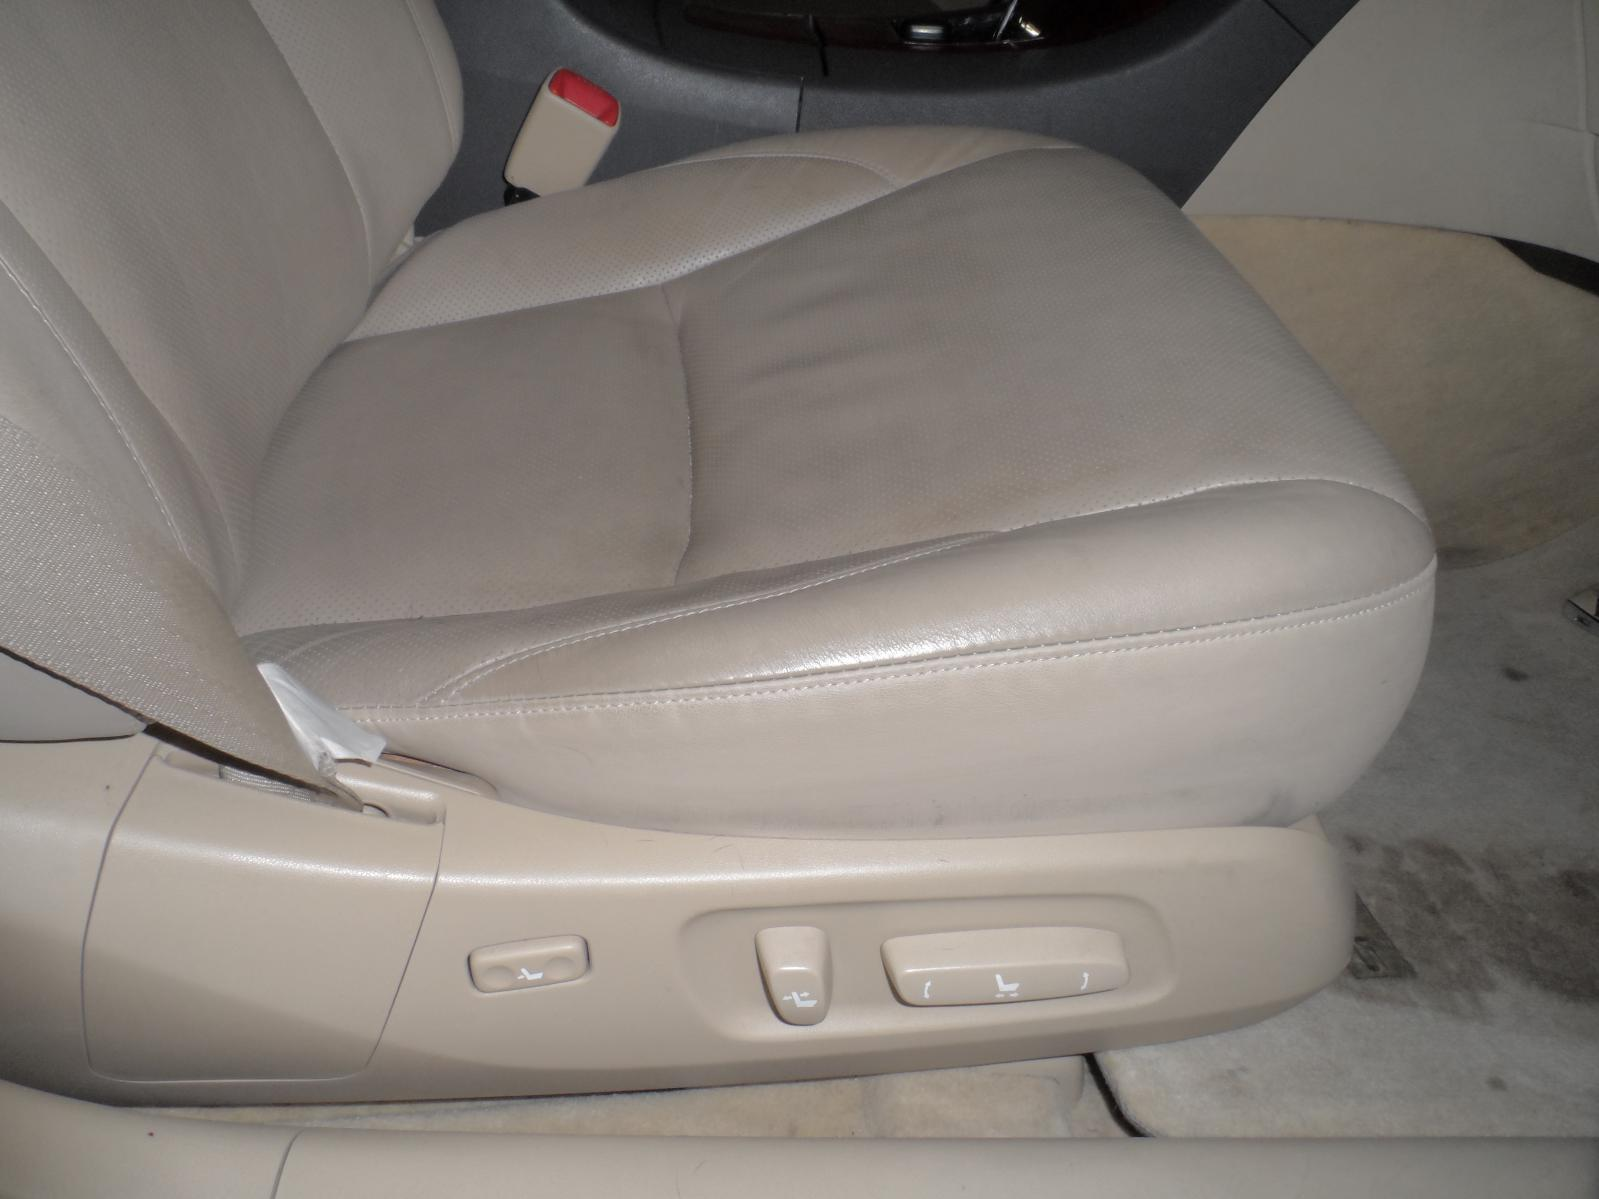 Ebay Auto Body Parts >> 2007 2008 LEXUS ES350: Right Front Seat, Tan LB05, Leather, Premium Heated | eBay